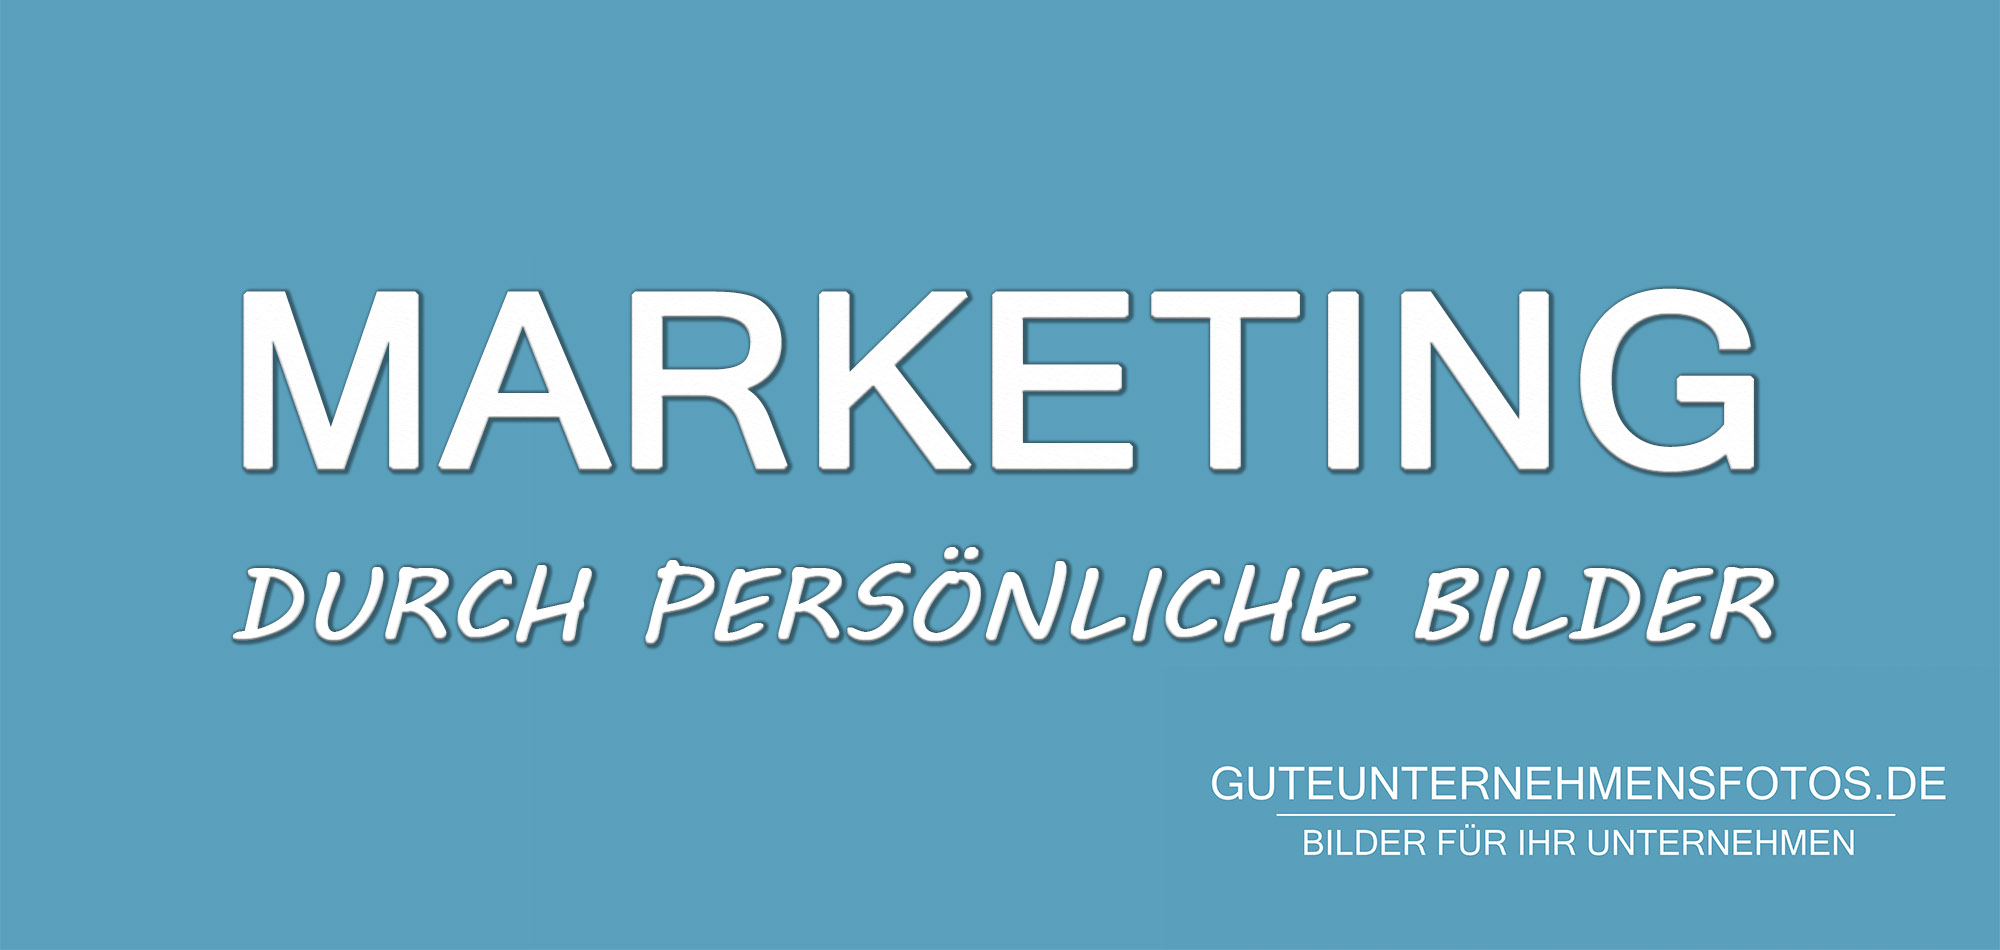 Marketing durch Bilder, Fotoaktionen, Greenscreen, Greenbox, Besonderes marketing, Mobiler Fotodrucker